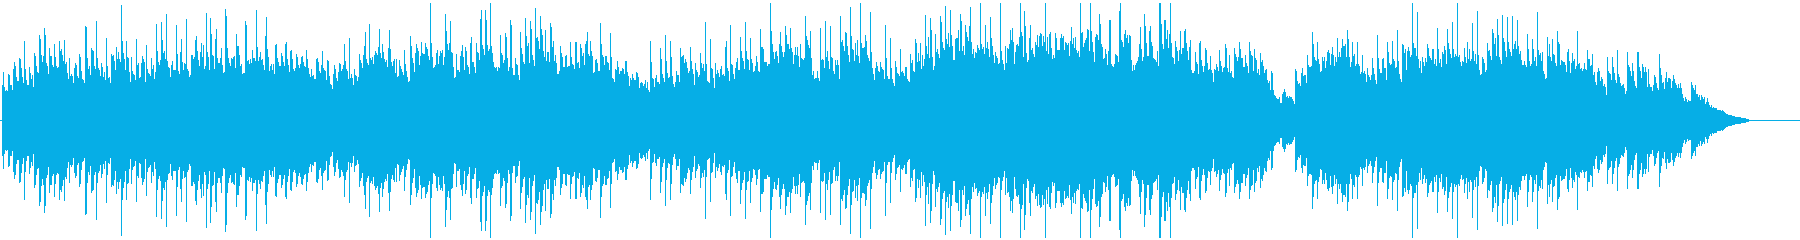 Nostalgic BGM's reproduced waveform